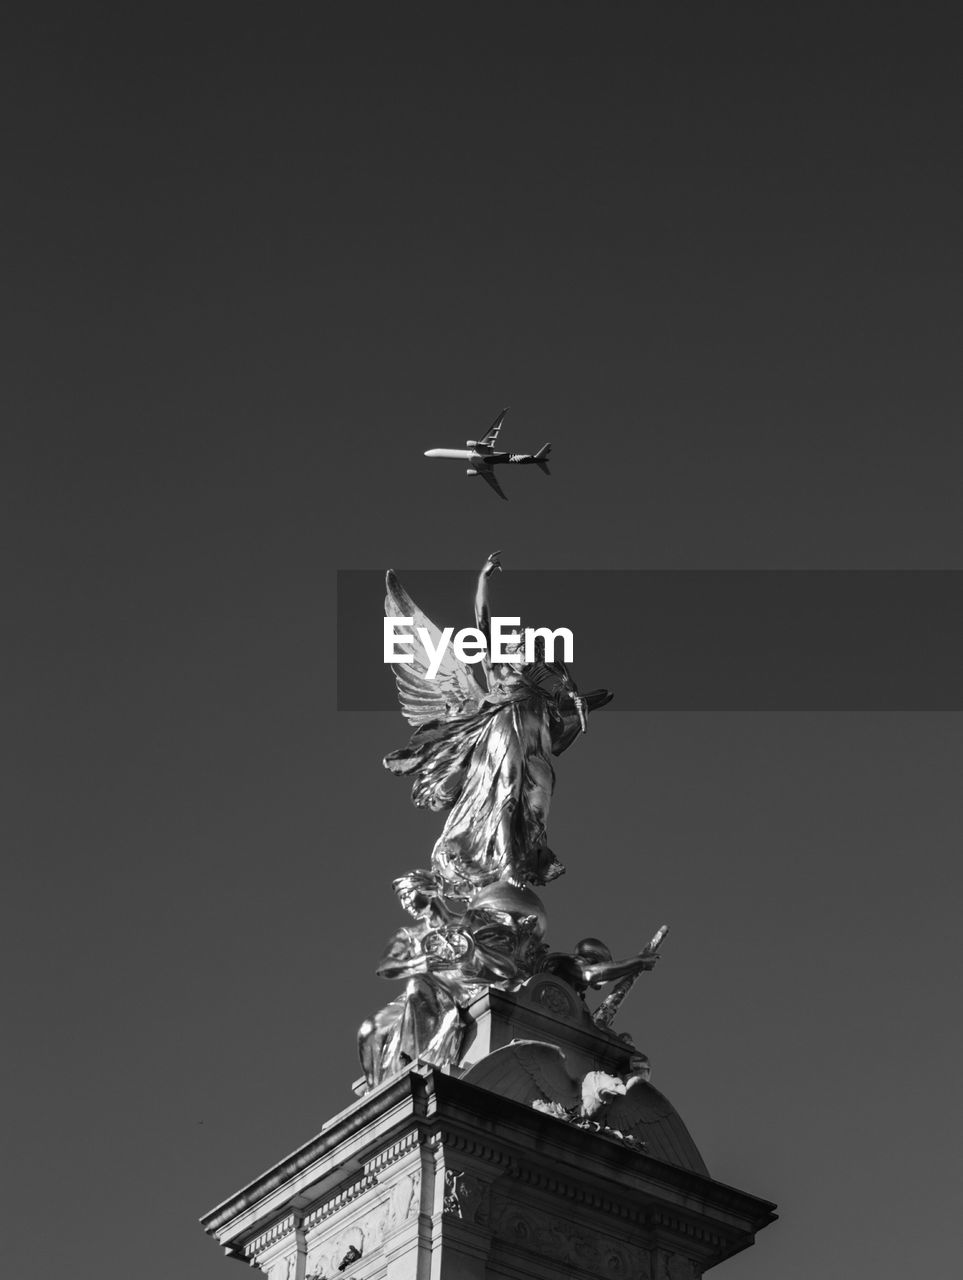 Low angle view of statue and airplane against sky